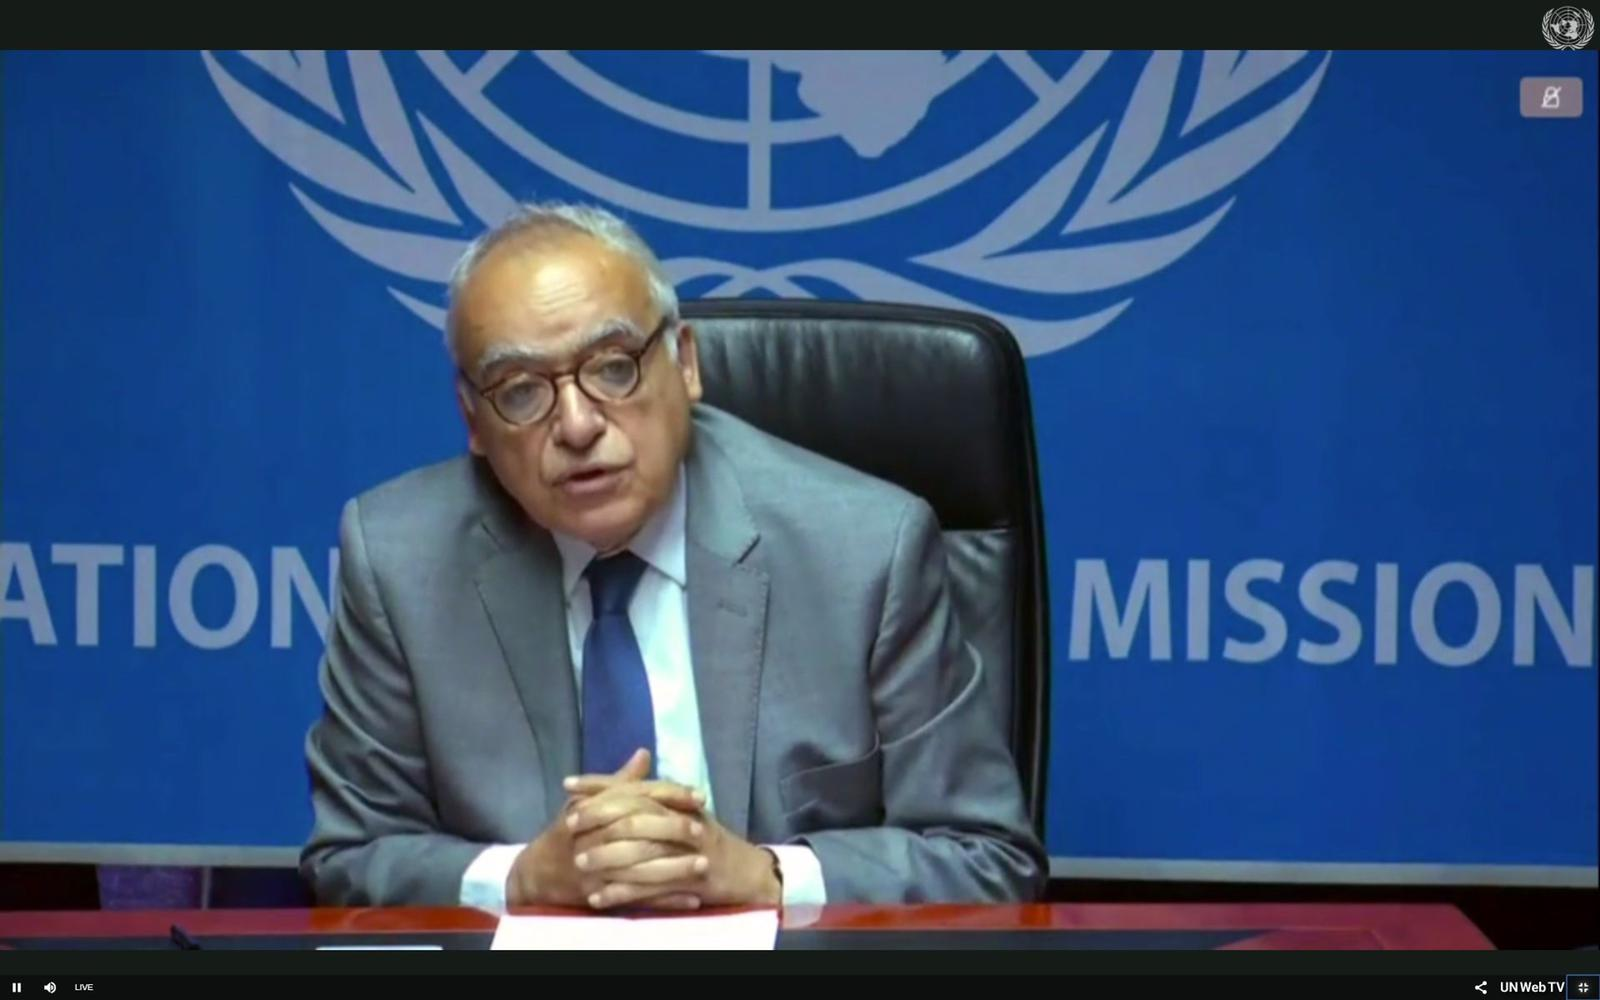 UN SRSG Ghassan Salame briefing the UNSC about the recent escalation of violence in Libya on July 30th, 2019.